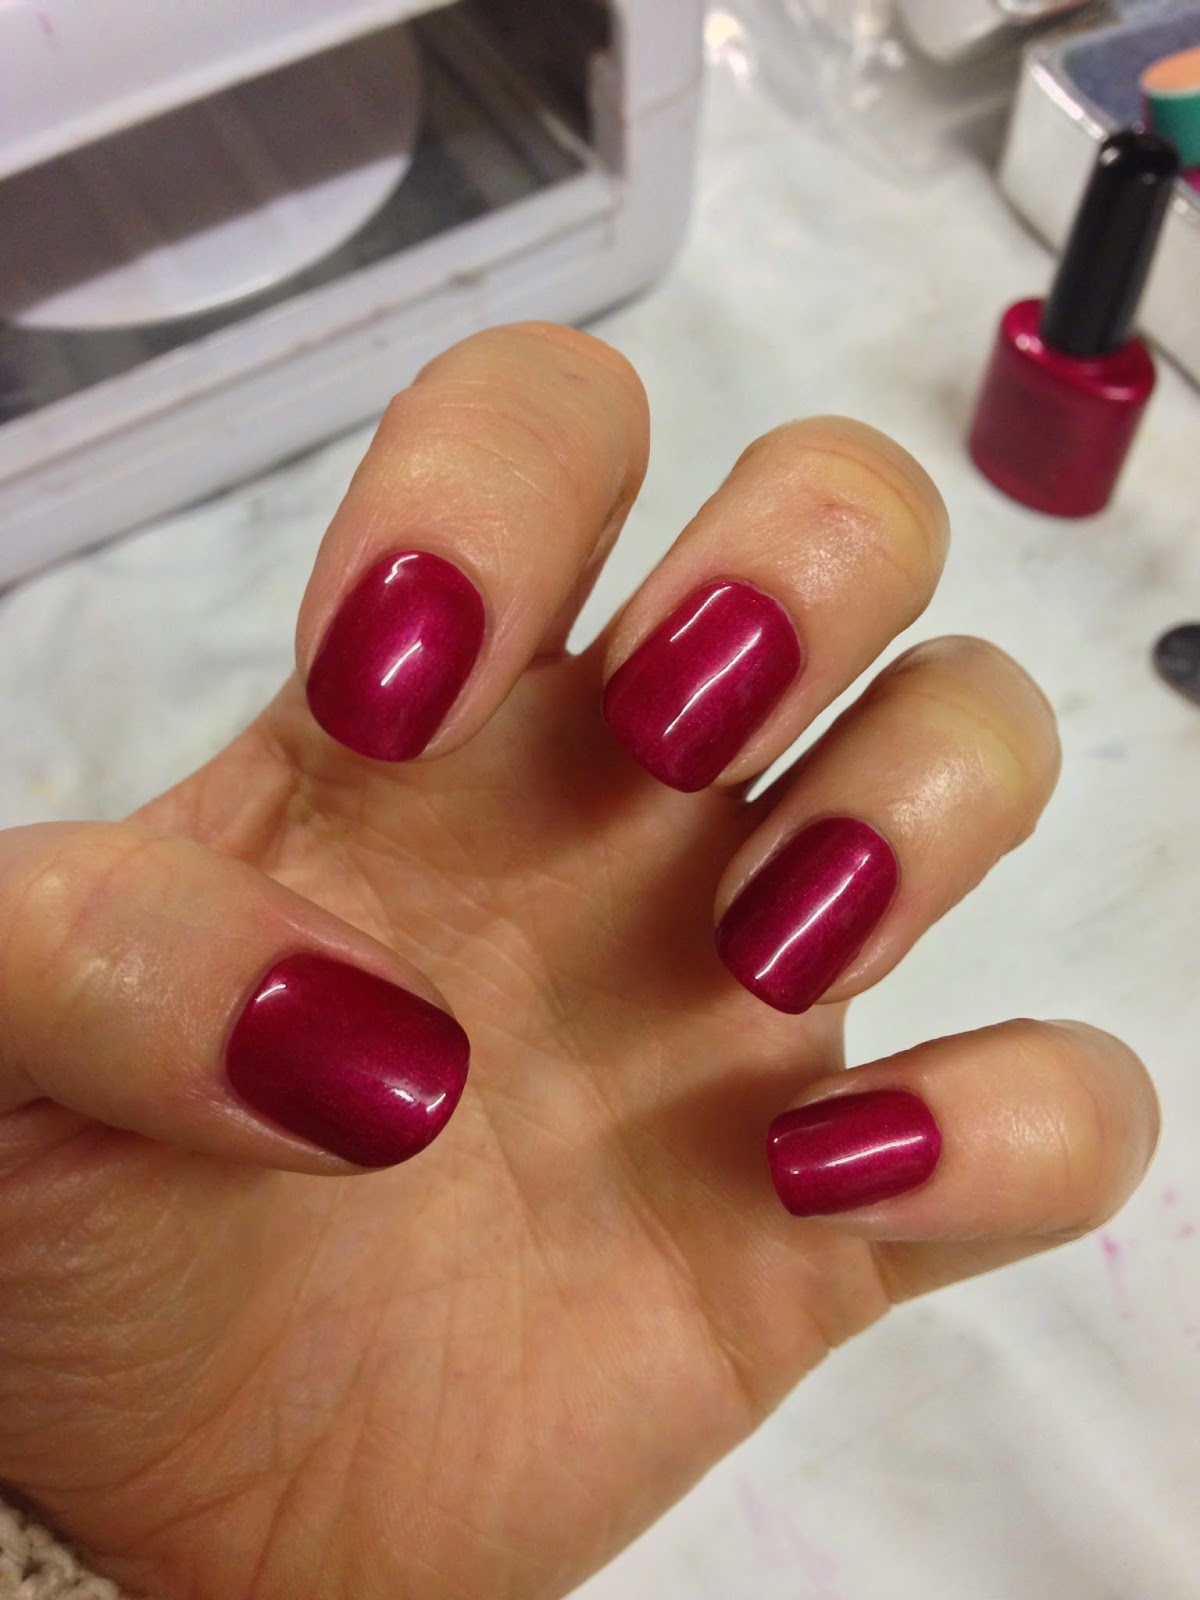 Brush Up And Polish Up!: CND Shellac Red Baroness